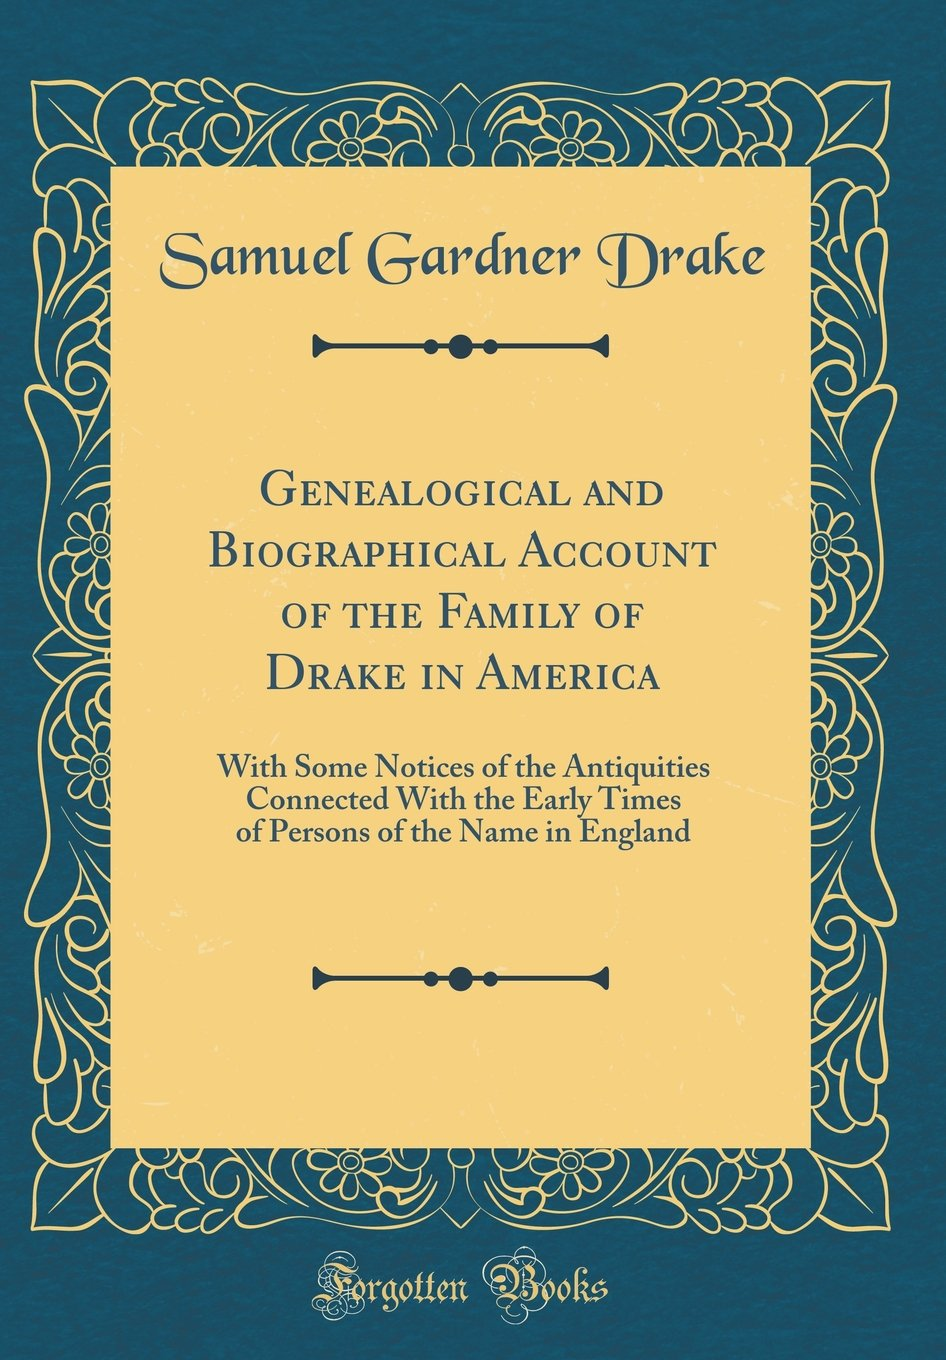 Genealogical and Biographical Account of the Family of Drake in America: With Some Notices of the Antiquities Connected with the Early Times of Persons of the Name in England (Classic Reprint) pdf